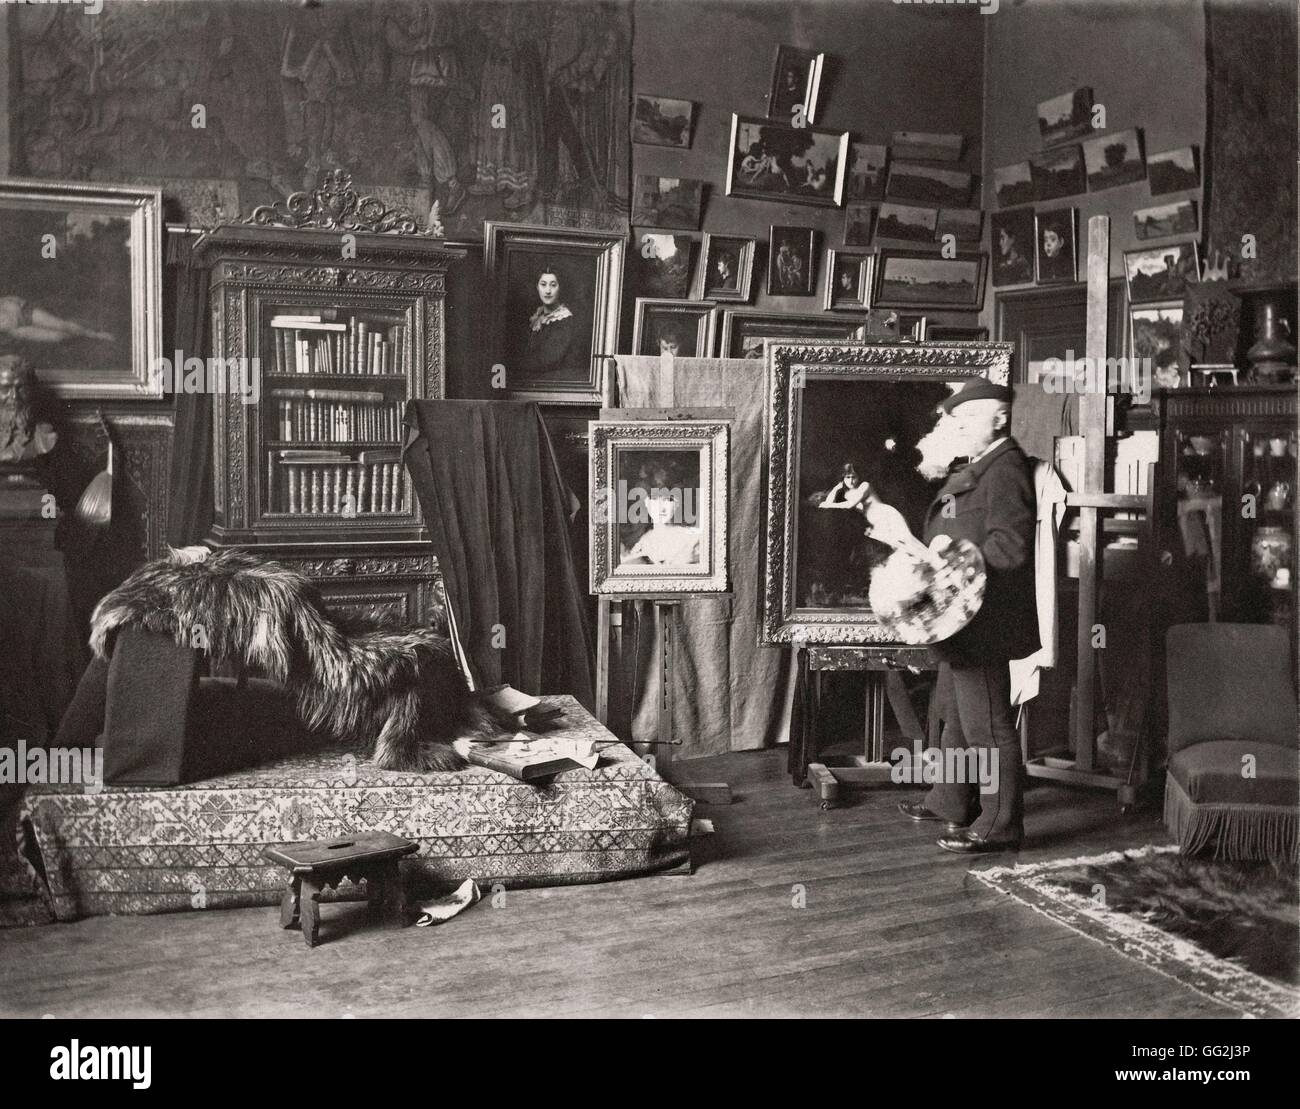 French painter Jean-Jacques Henner in his studio located 11 rue Pigalle in the 9th arrondissement in Paris. On the - Stock Image